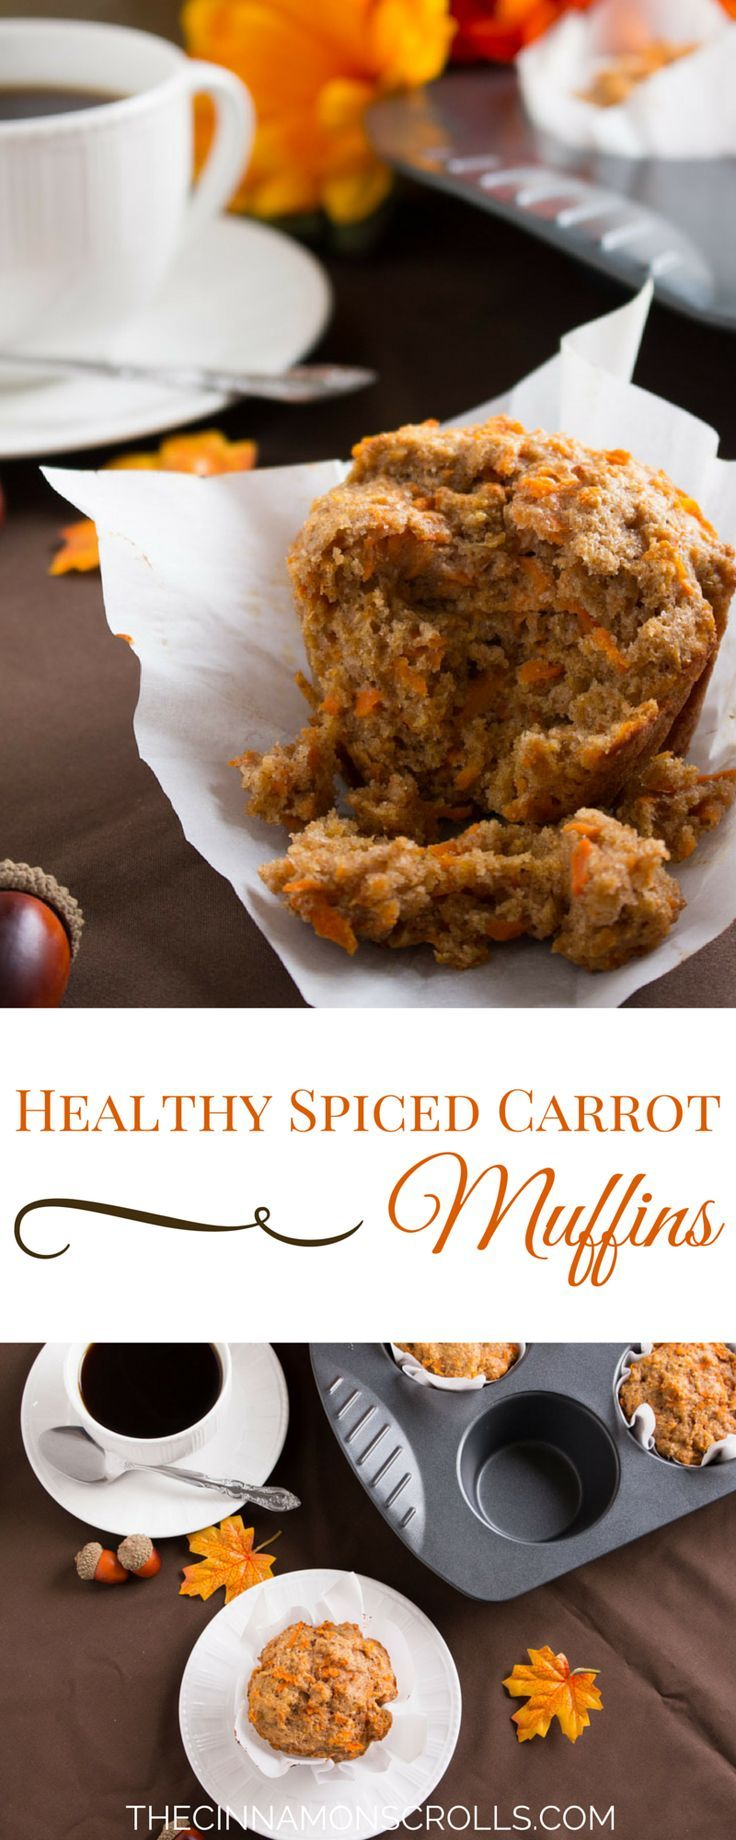 These spiced carrot muffins are perfect for fall when carrots are amazingly sweet. Loaded up with vitamins, fibre, protein, and calcium, they will get you through your busy morning with ease. And although they're healthy, I promise they taste nothing of the sort! | thecinnamonscrolls.com @cinnamonscribe